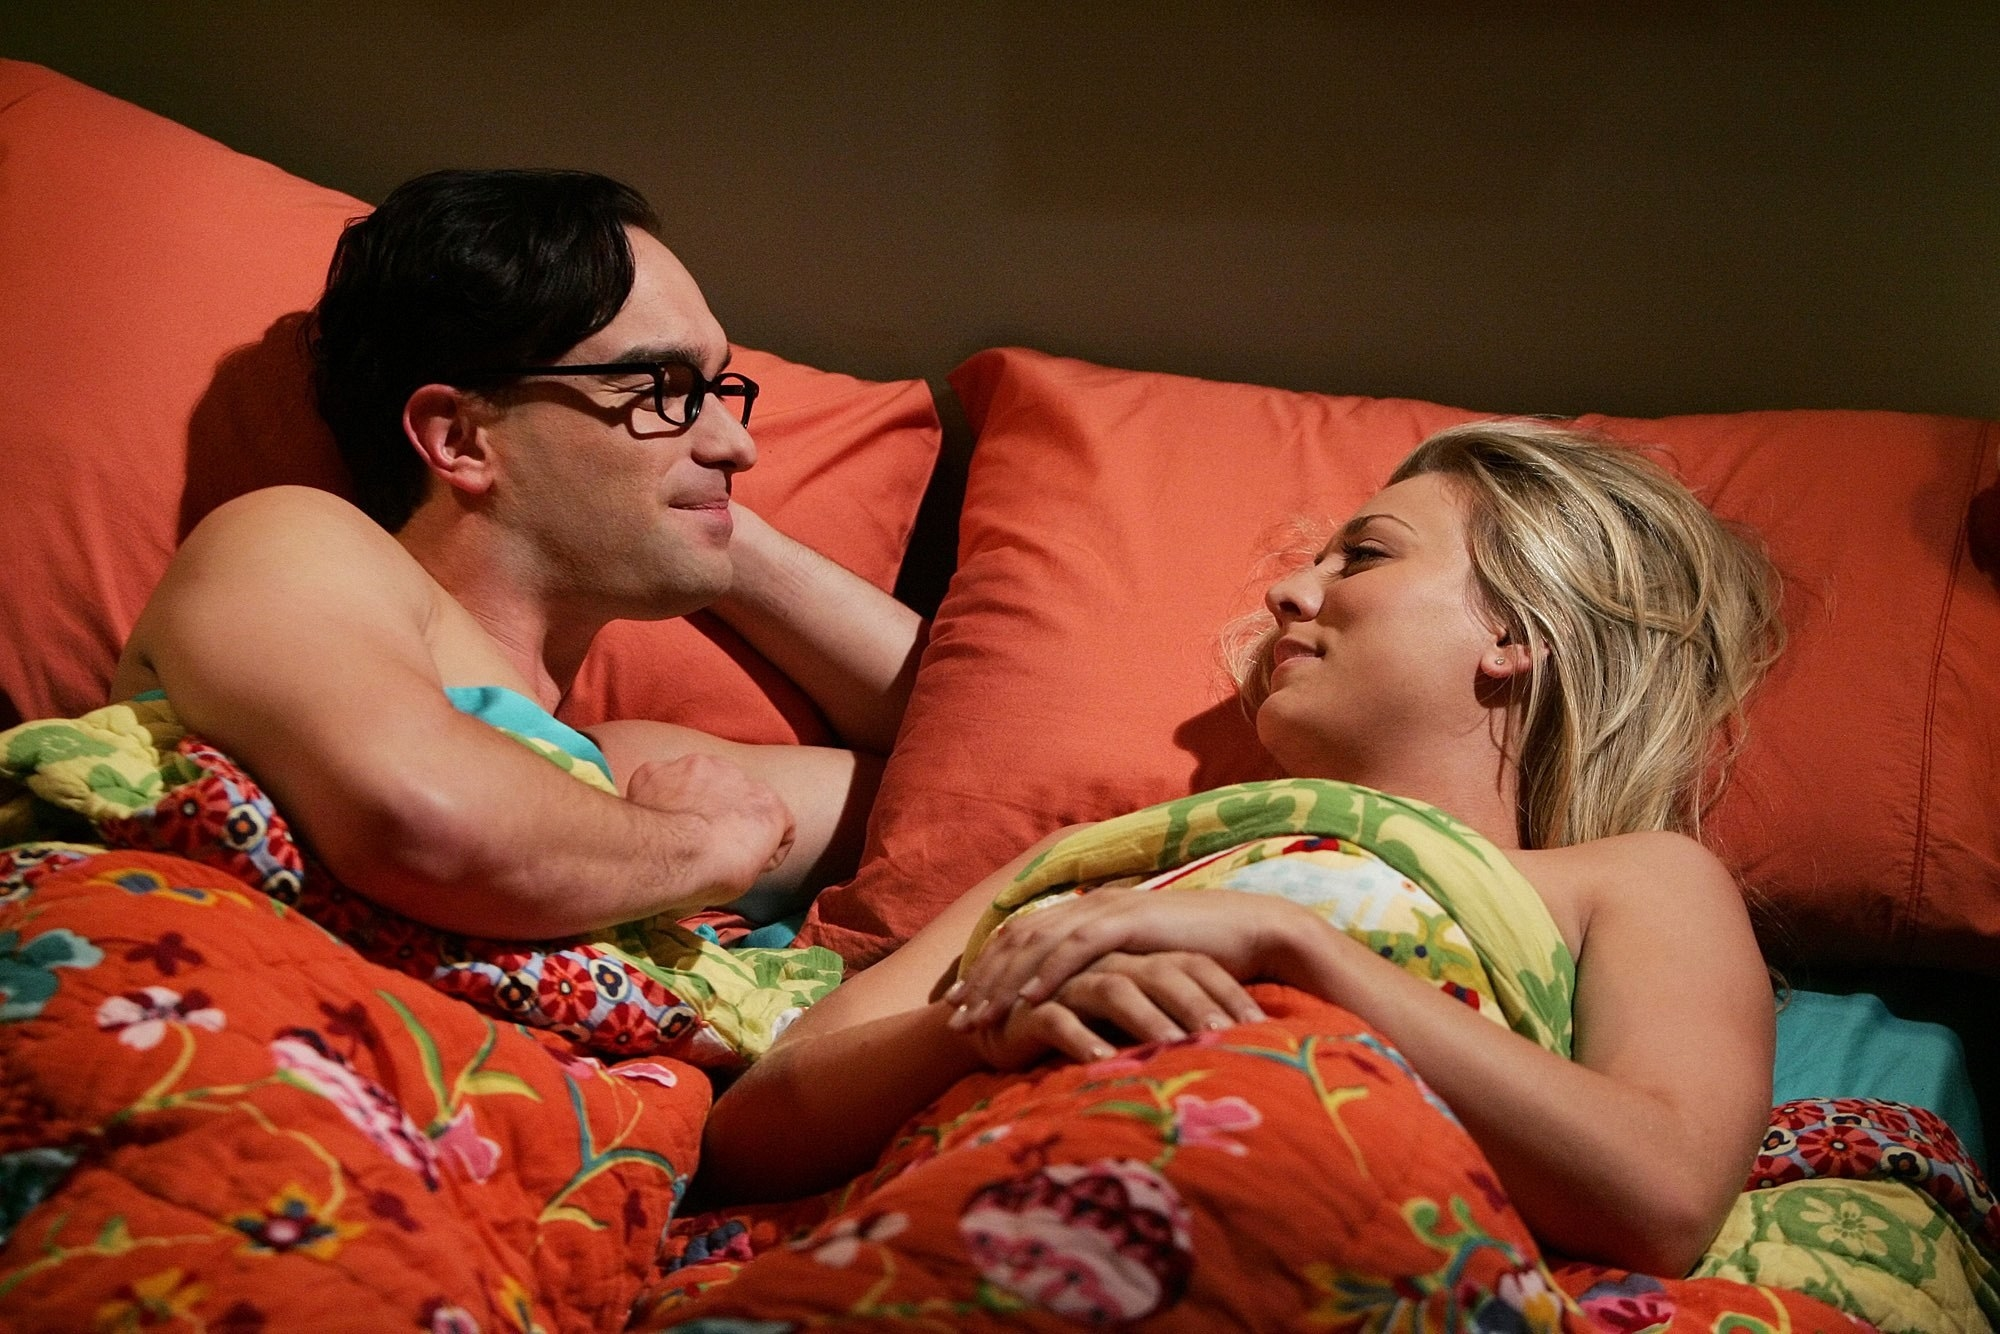 Leonard (Galecki) and Penny (Cuoco) in bed together on The Big Bang Theory